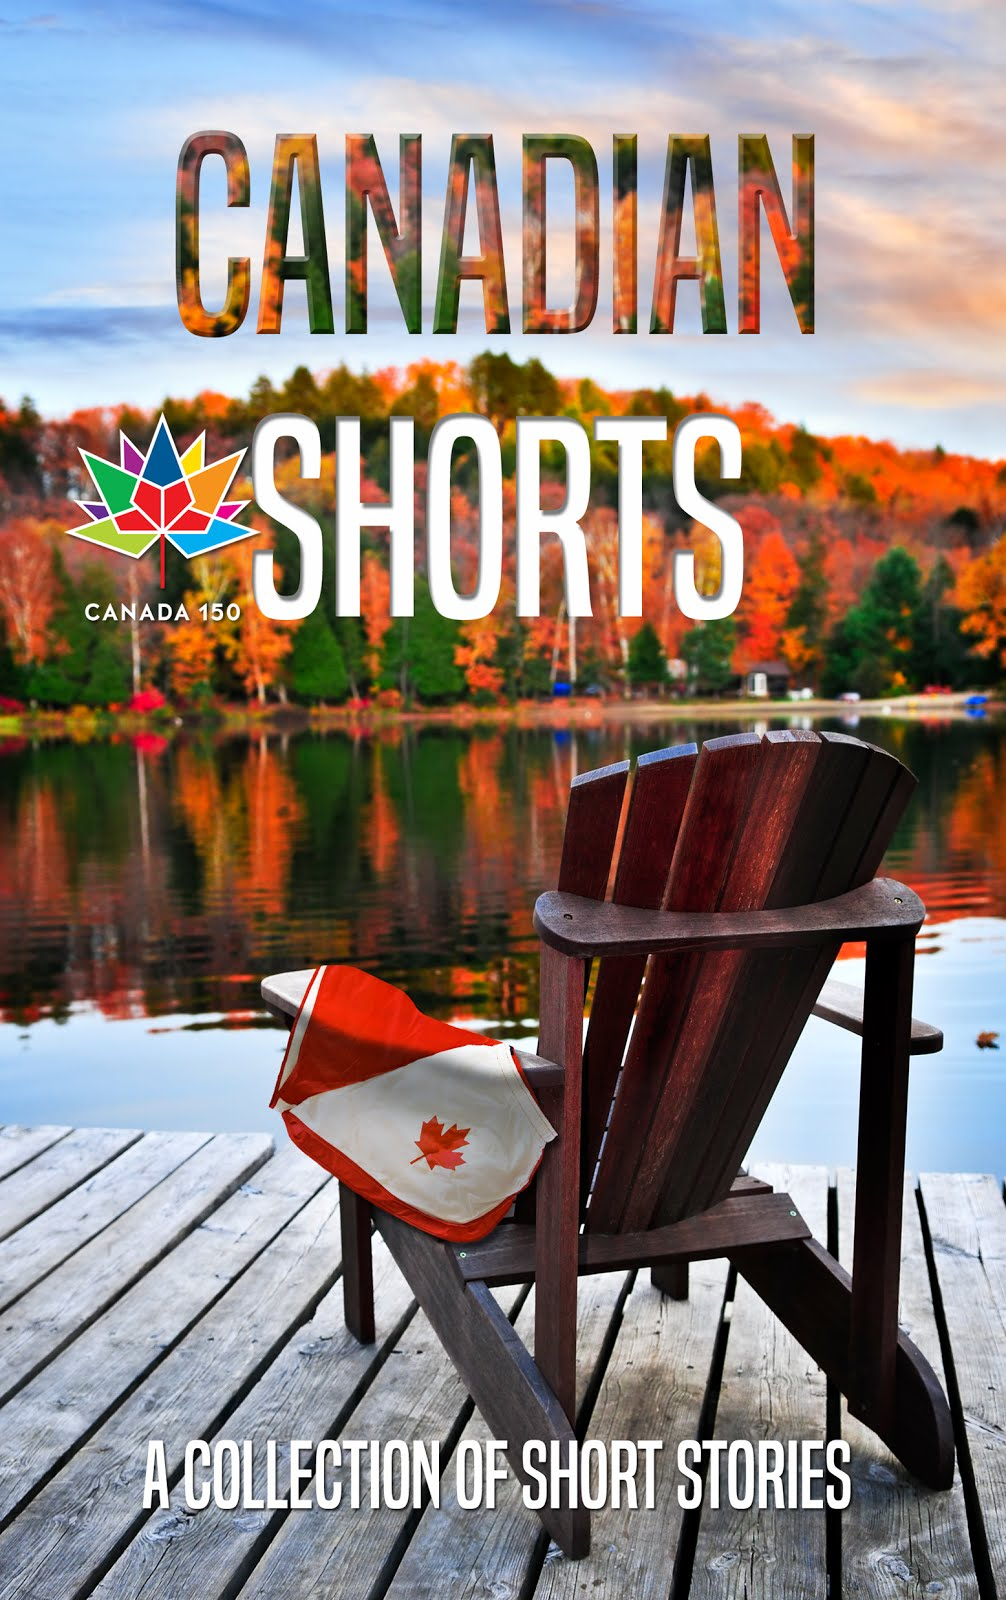 CANADIAN SHORTS has arrived at Chapters in Thunder Bay.